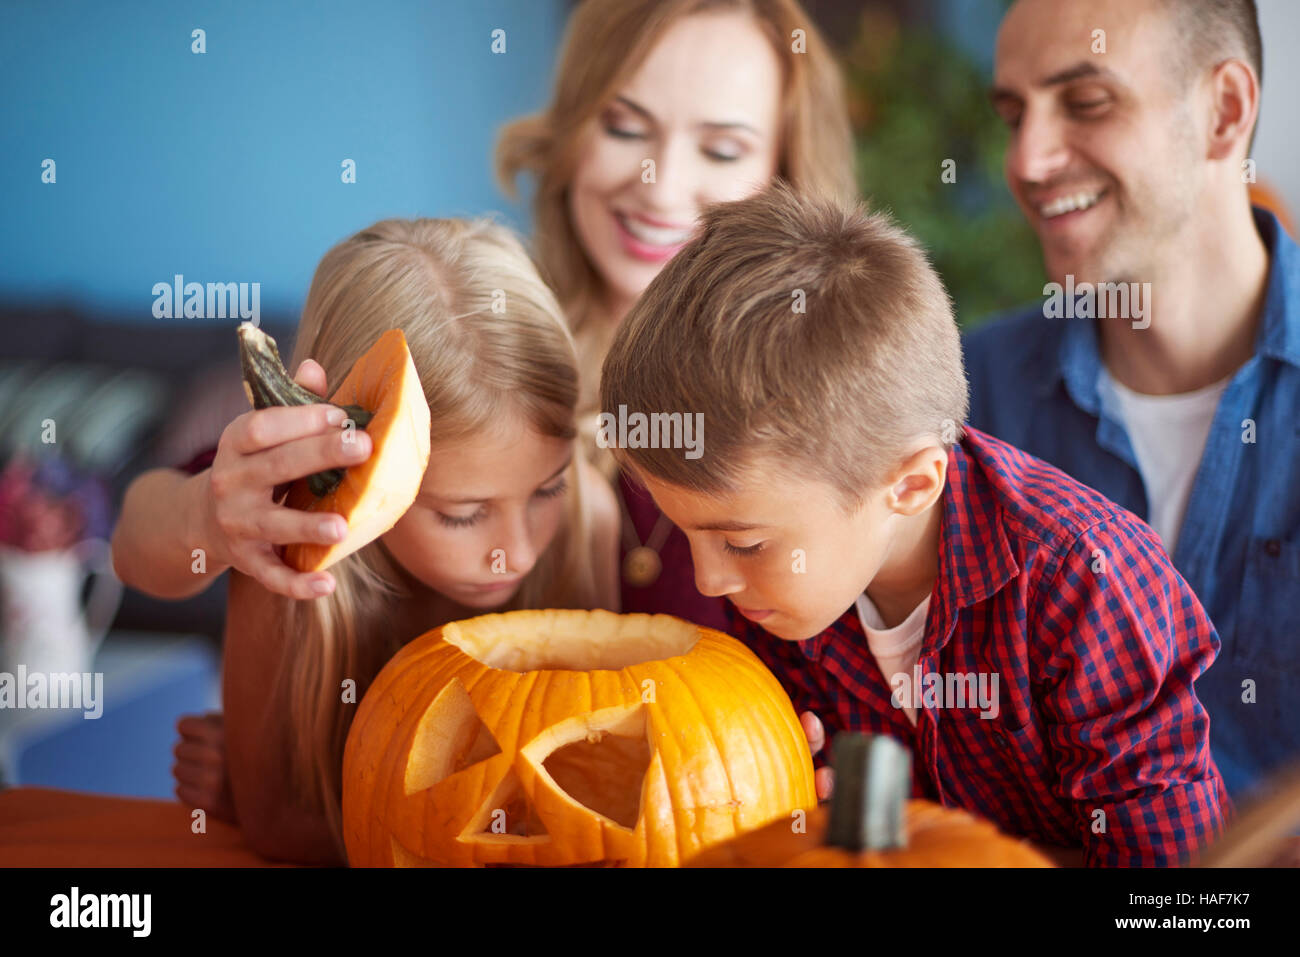 Drilled pumpking and curious children - Stock Image